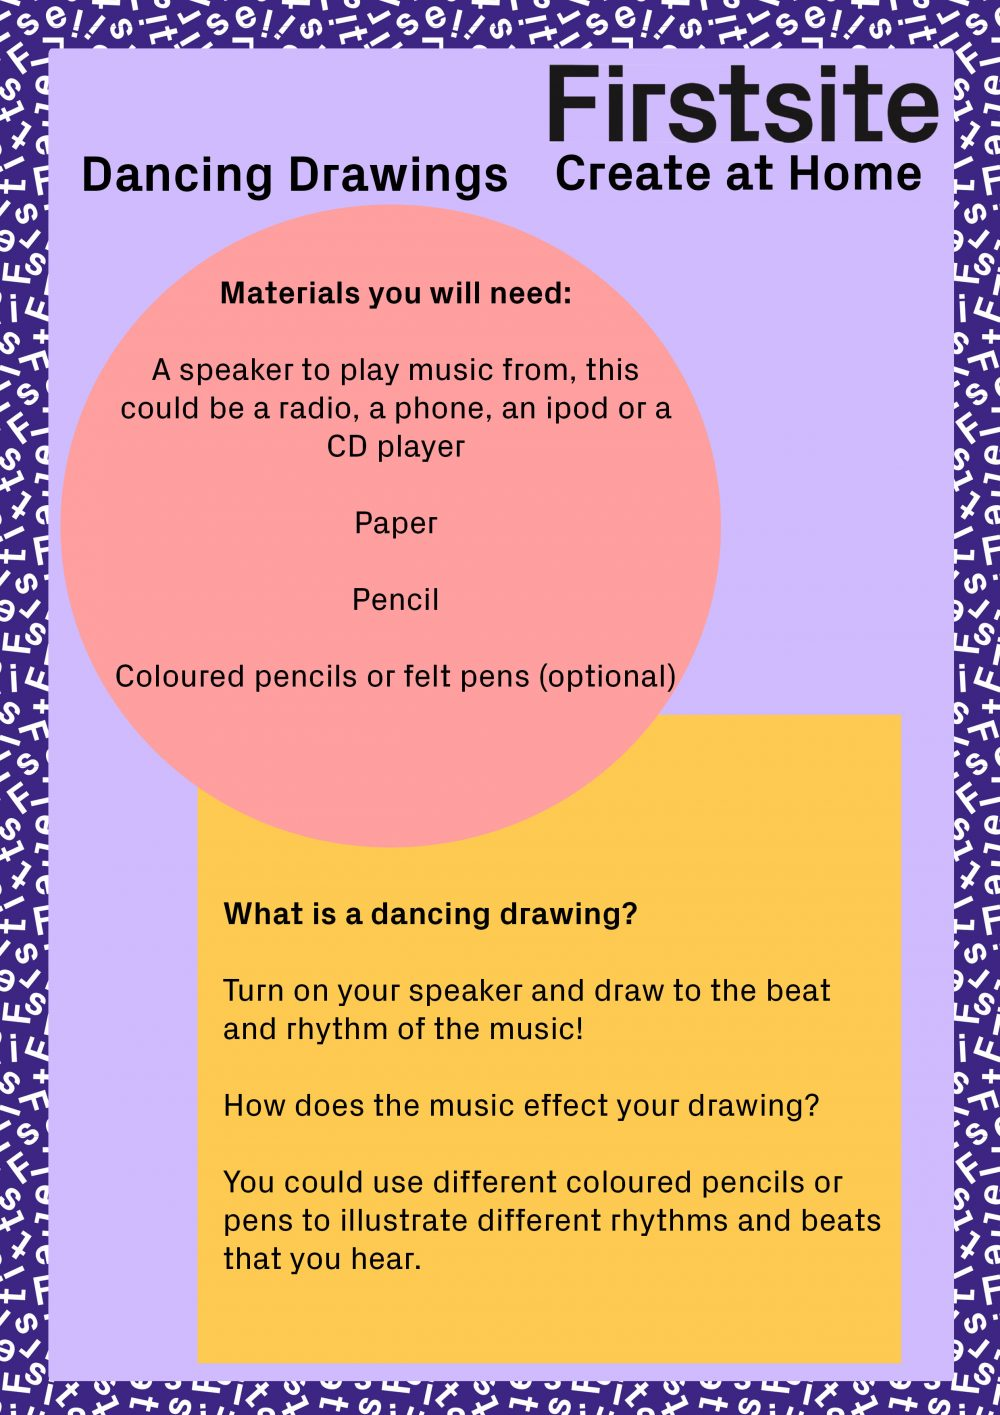 Firstsite Create at Home Dancing Drawings art activity instructions 1 of 2